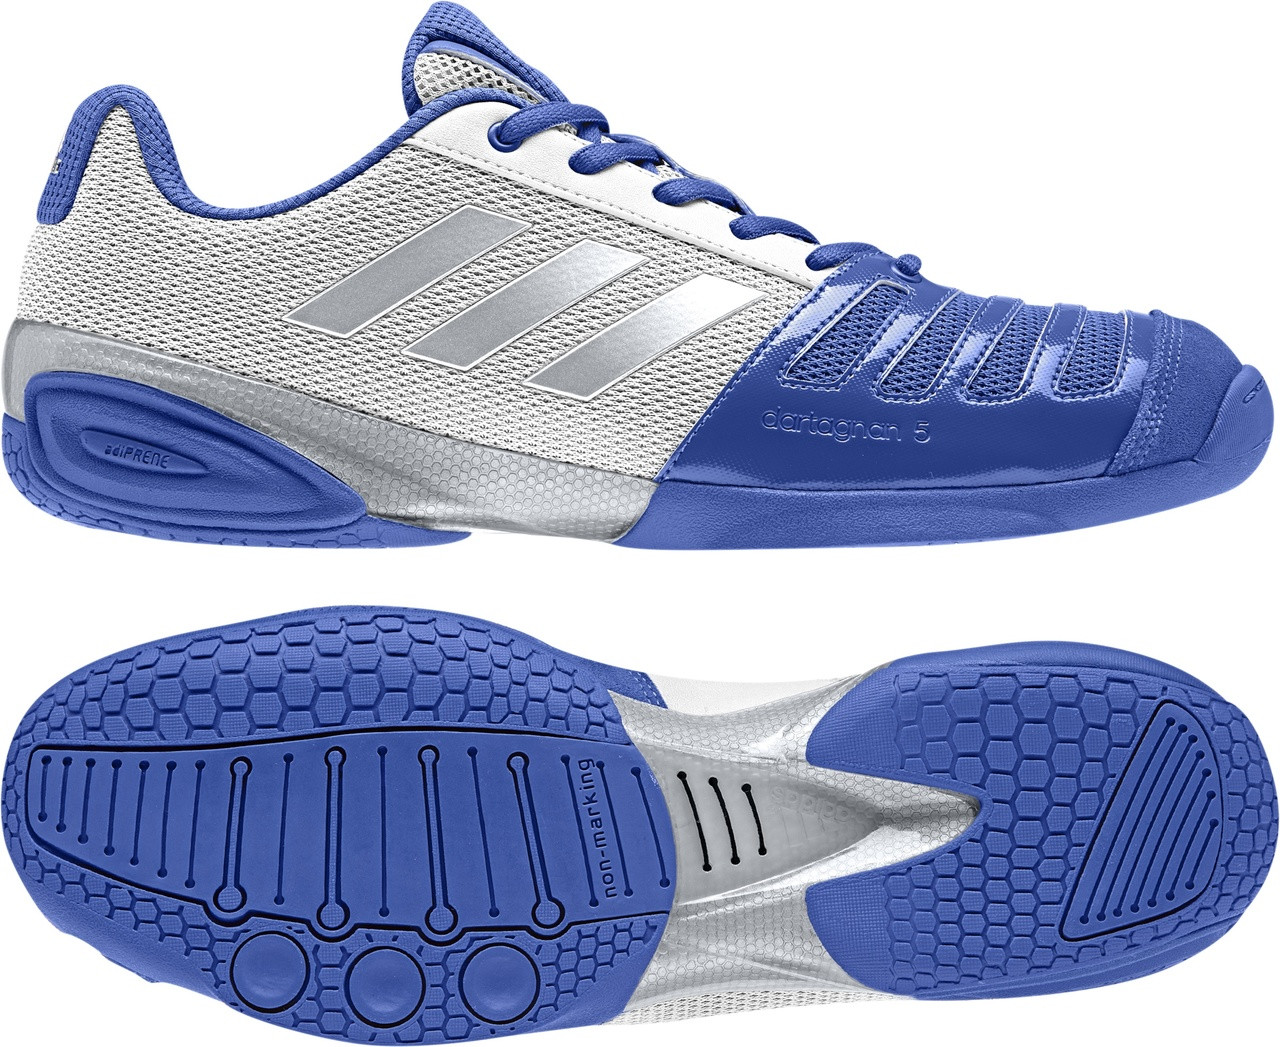 Preguntarse casado Saludo  Fencing Shoes -Adidas 2018 D'Artagnan V BLUE - NEW!! - The Fencing Post